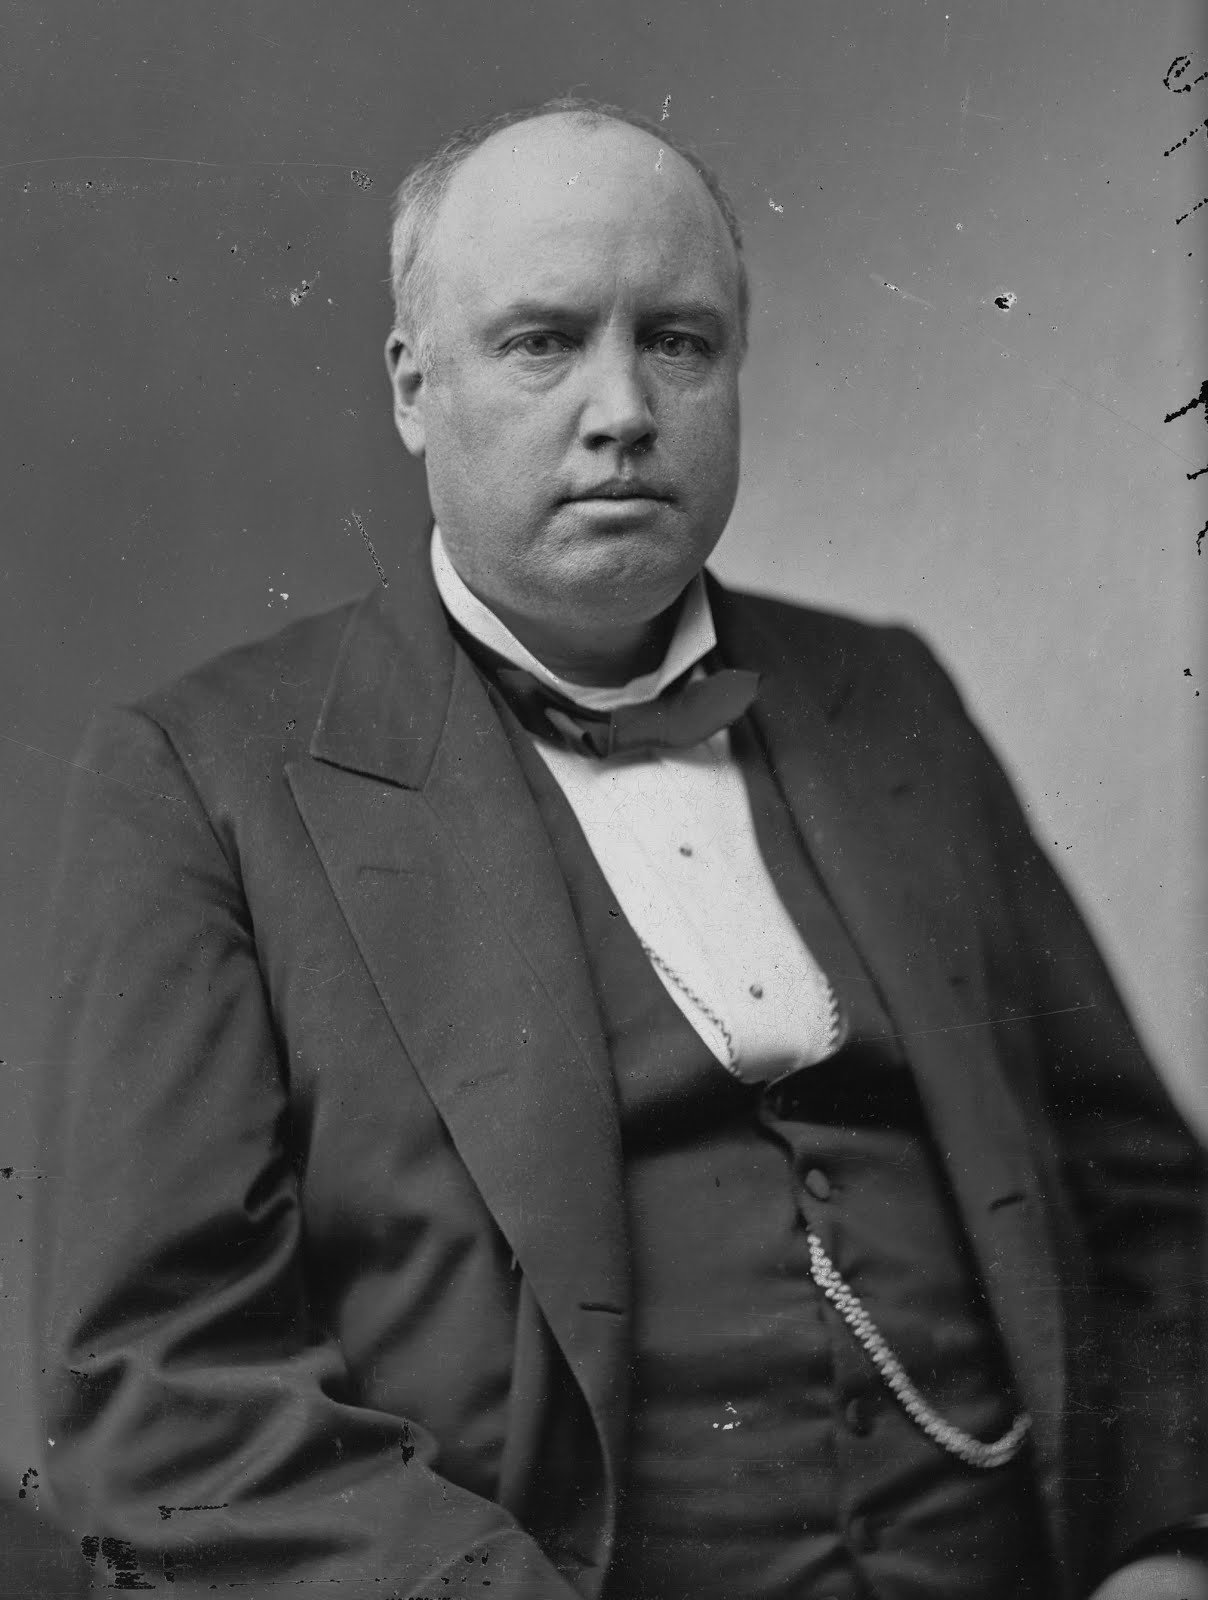 Happy August birthday Robert Ingersoll